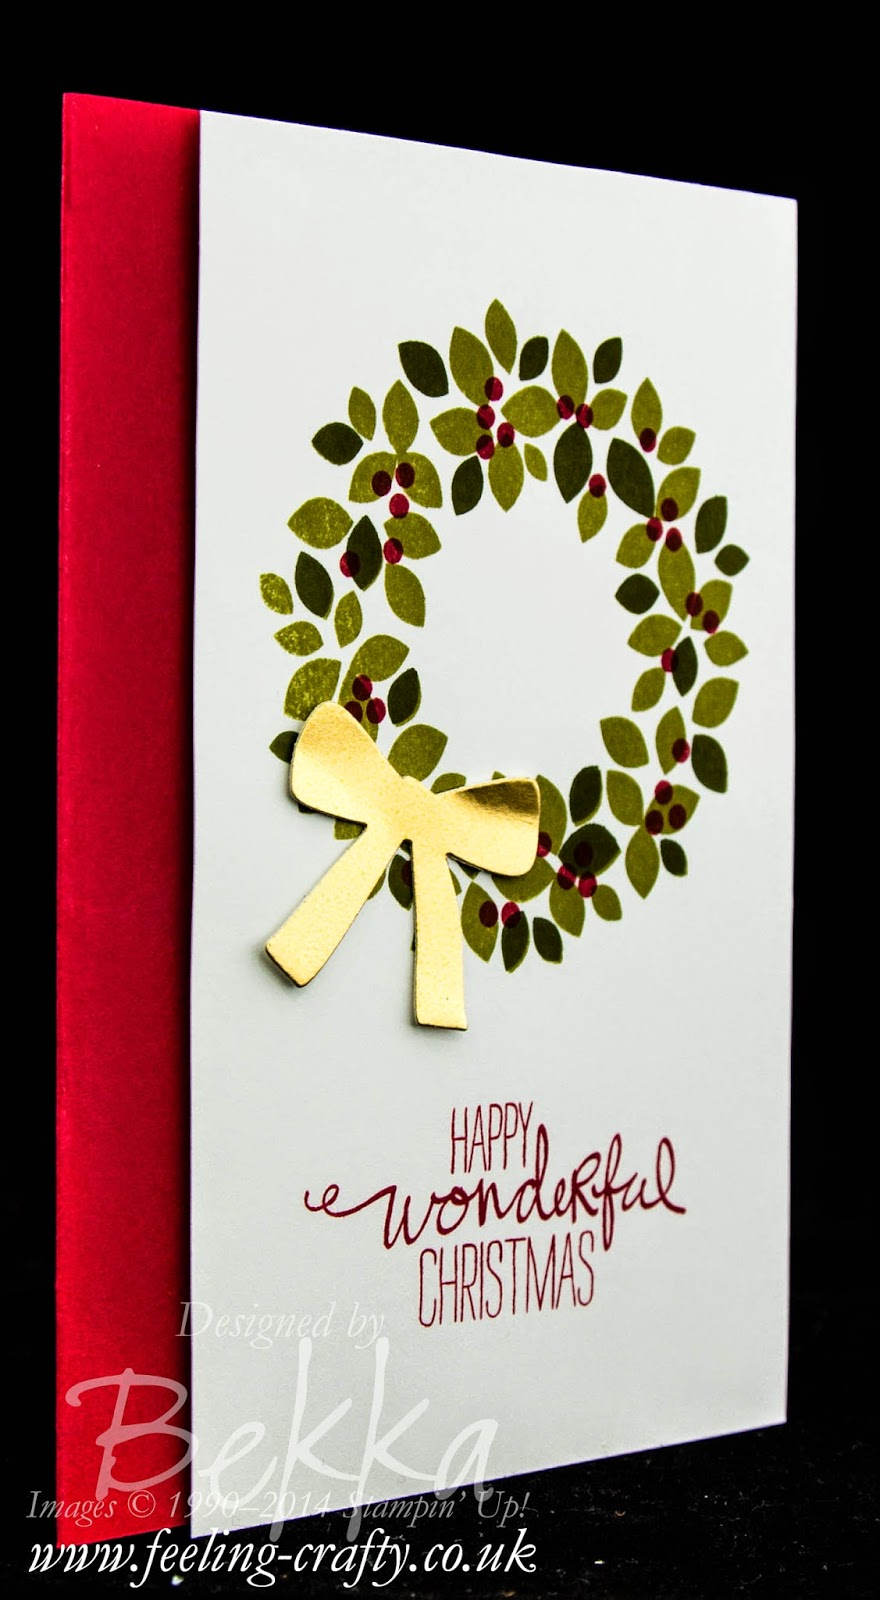 Wondrous Wreath Christmas Card by Stampin' Up! UK Independent Demonstrator Bekka - check this blog for lots of ideas using this stamp set.